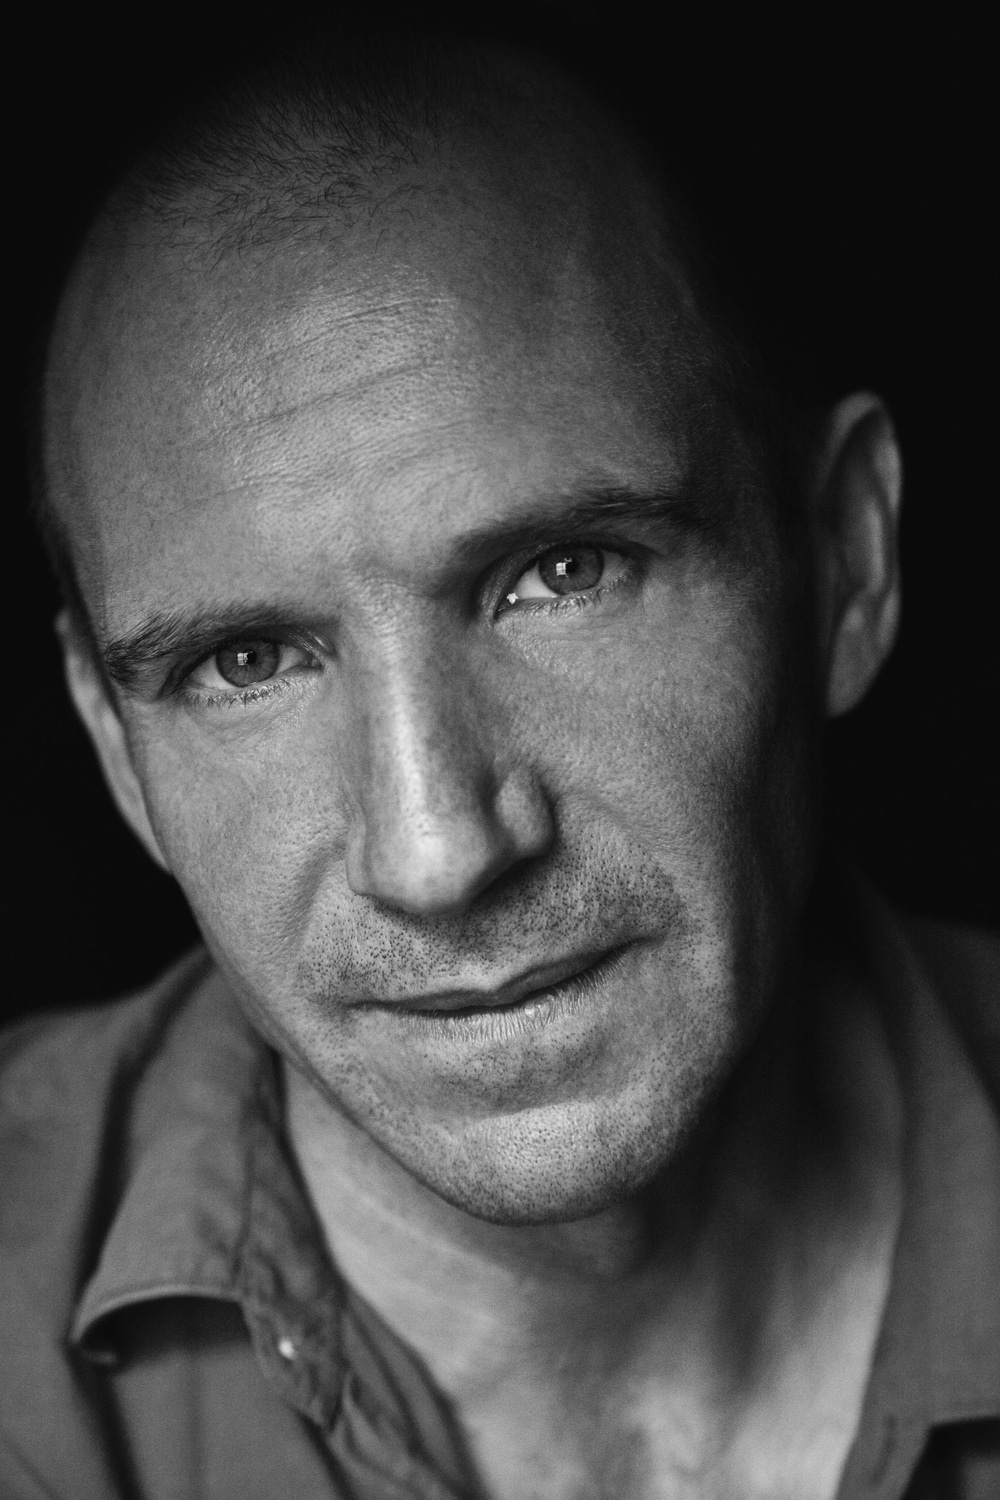 RALPH FIENNES PHOTOGRAPHED BY BARRY MCCALL FOR PHO20GRAPHY